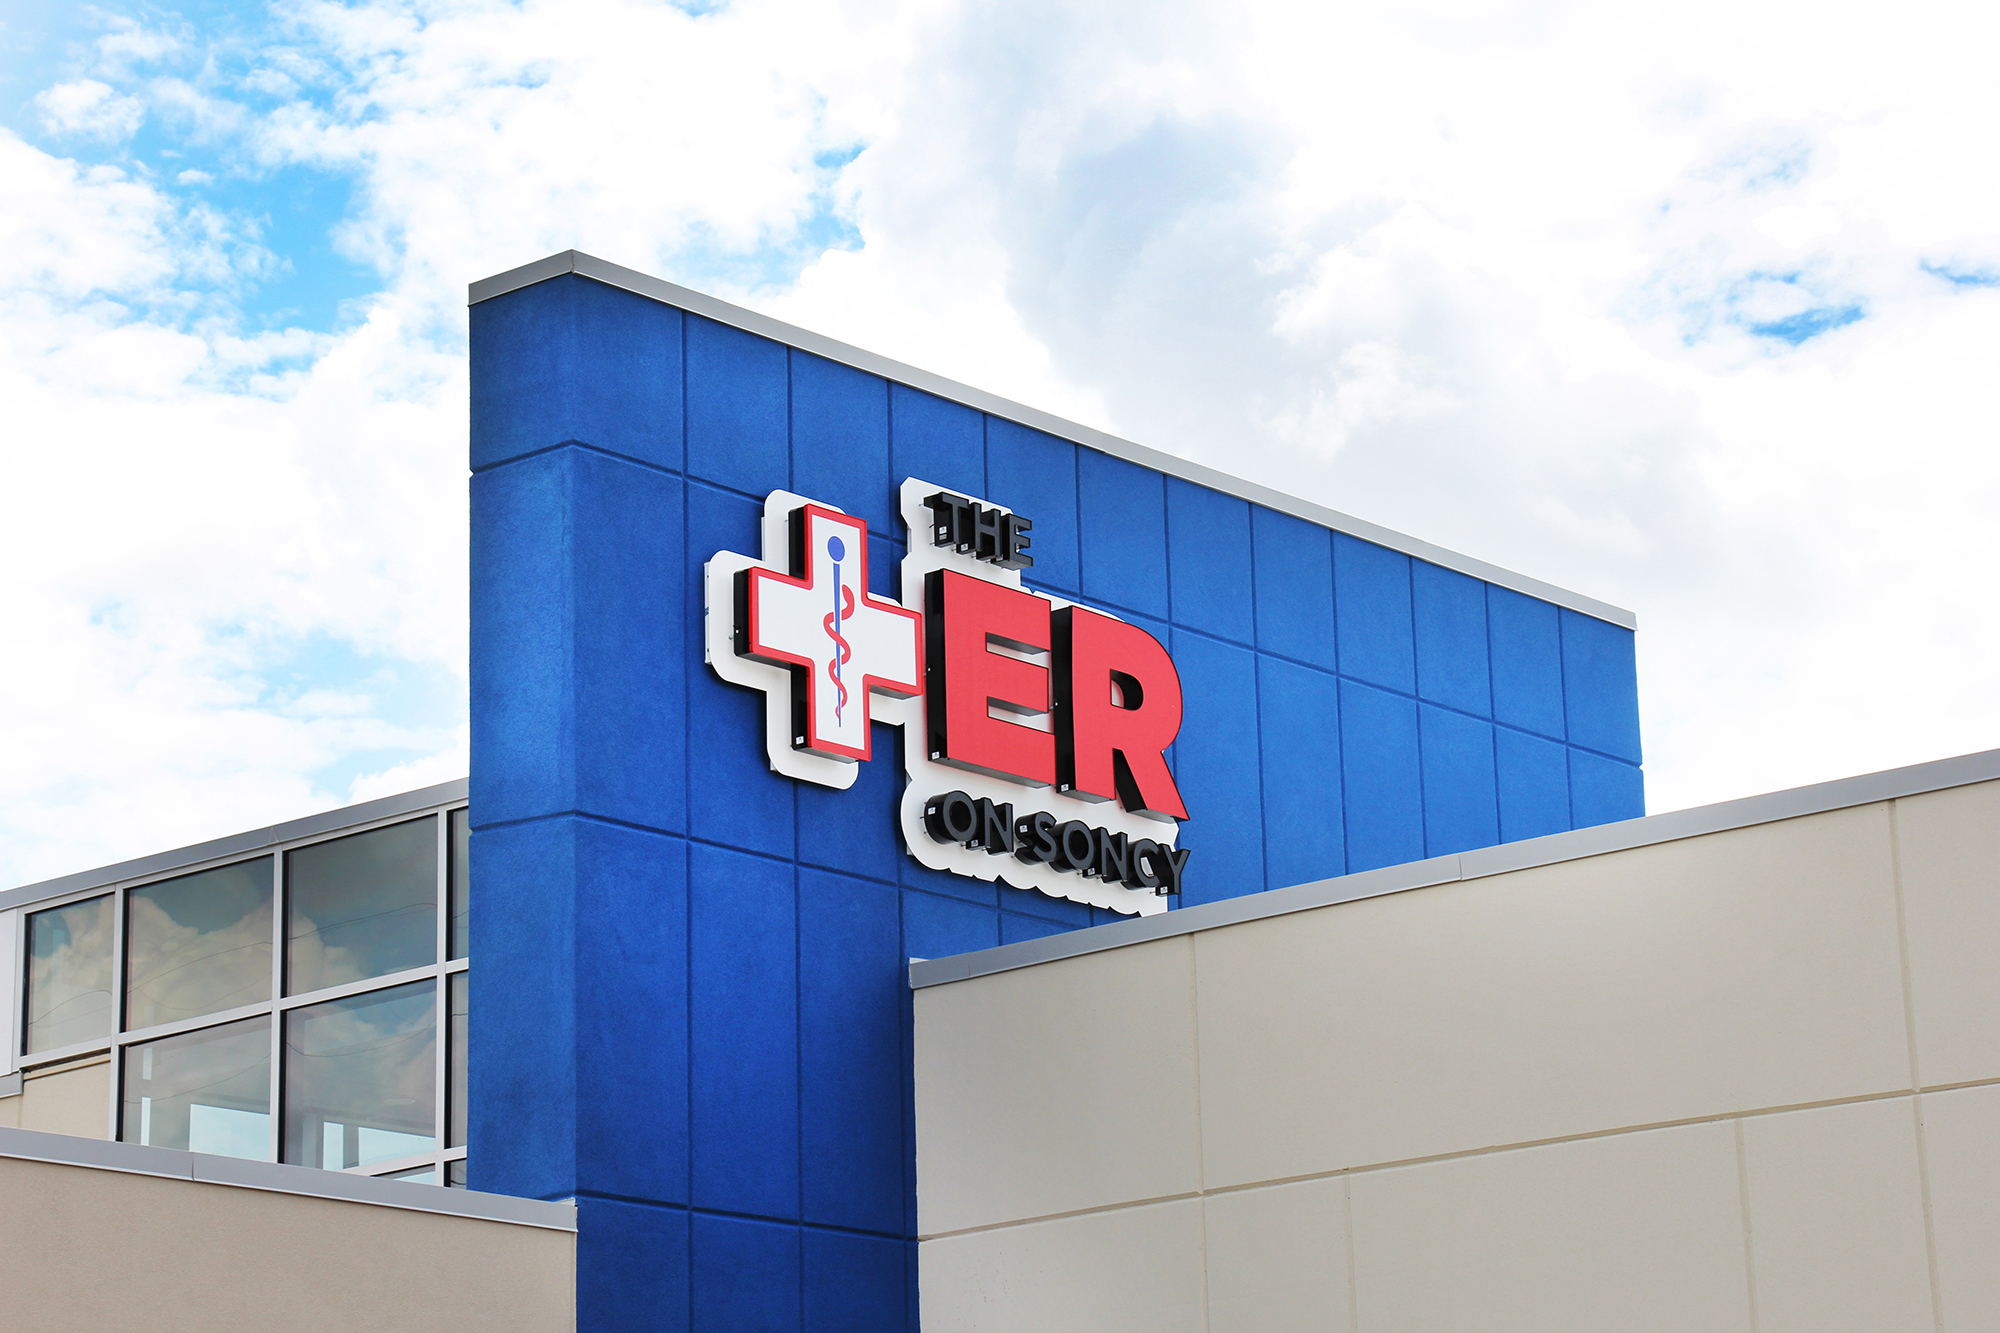 How Are Urgent Care Centers and Free Standing ERs Different?